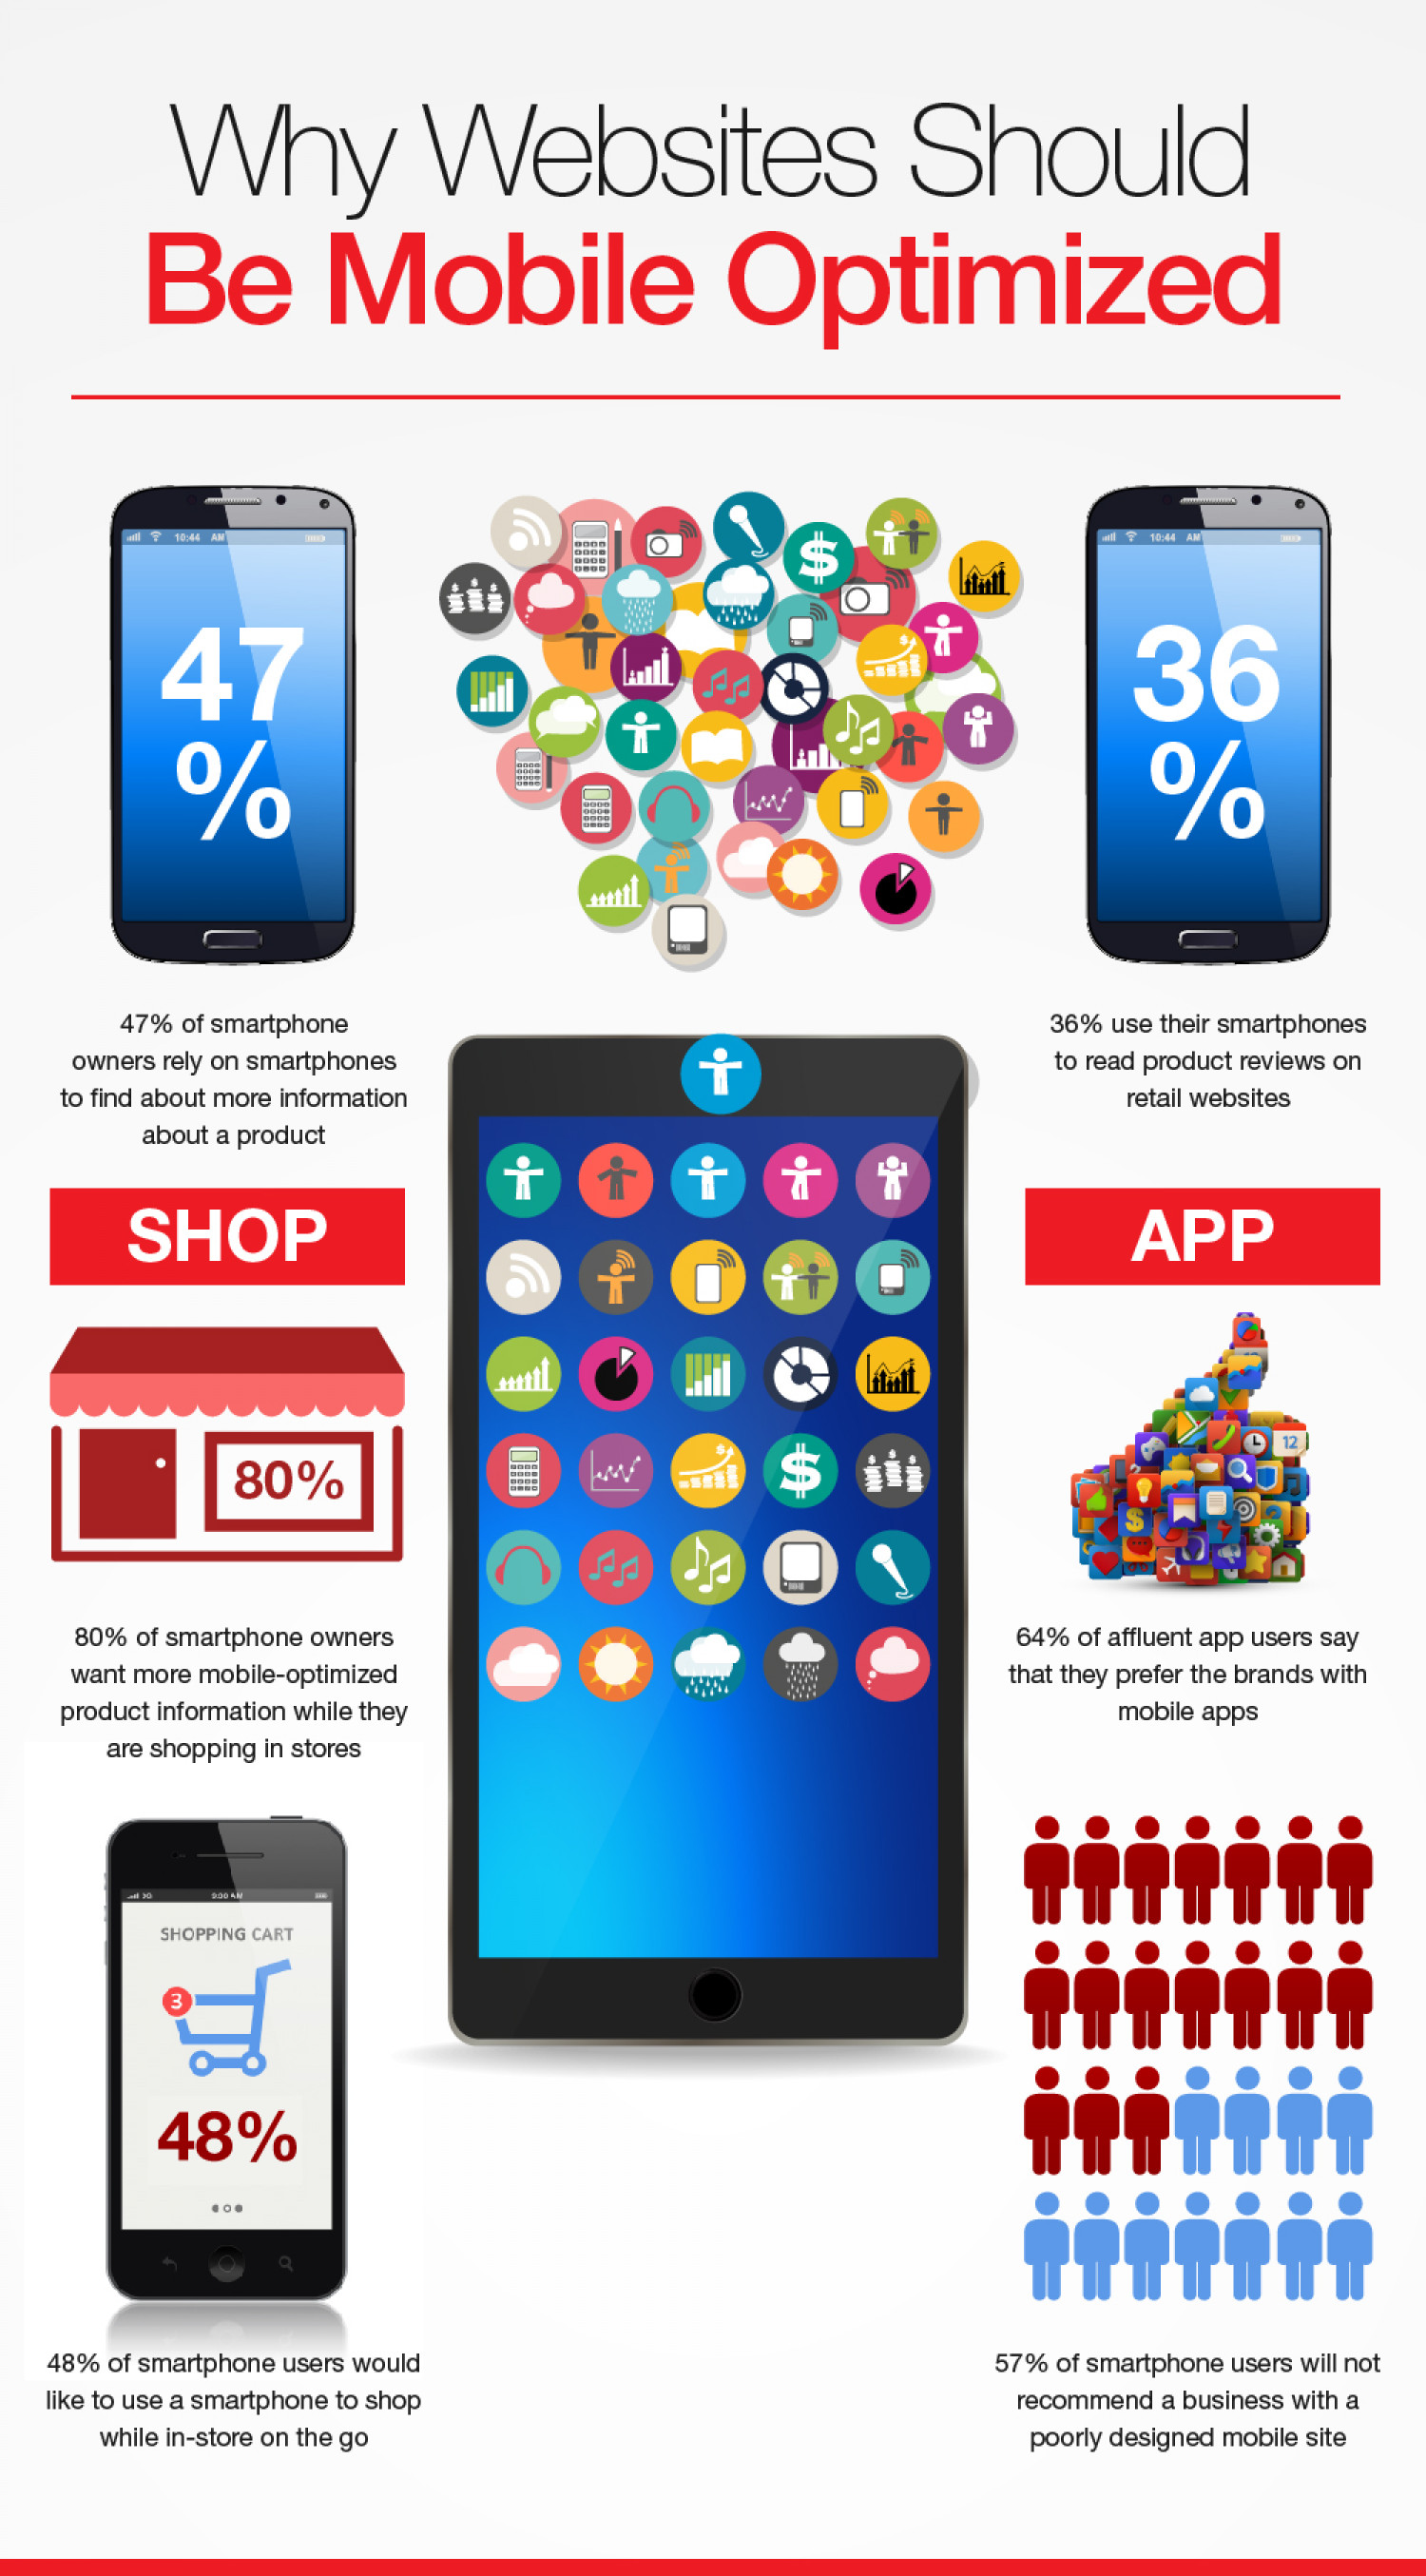 Why Websites Should be Mobile Optimized Infographic